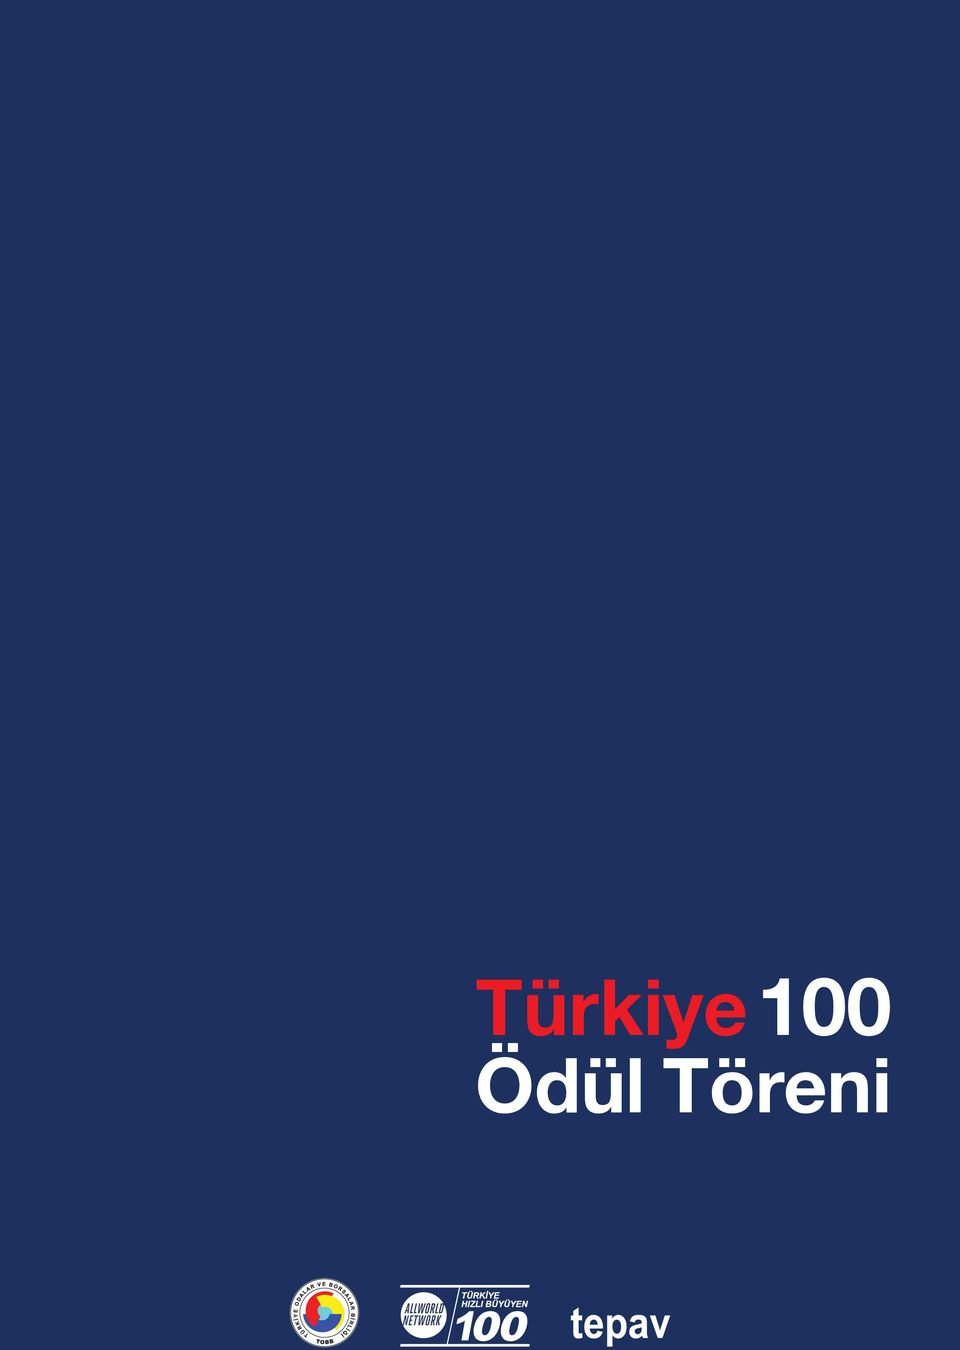 The AllWorld Turkey100 are some of the world s fastest growing young companies that are pioneering solutions in old and new industries and have created 11,000 jobs in three years.